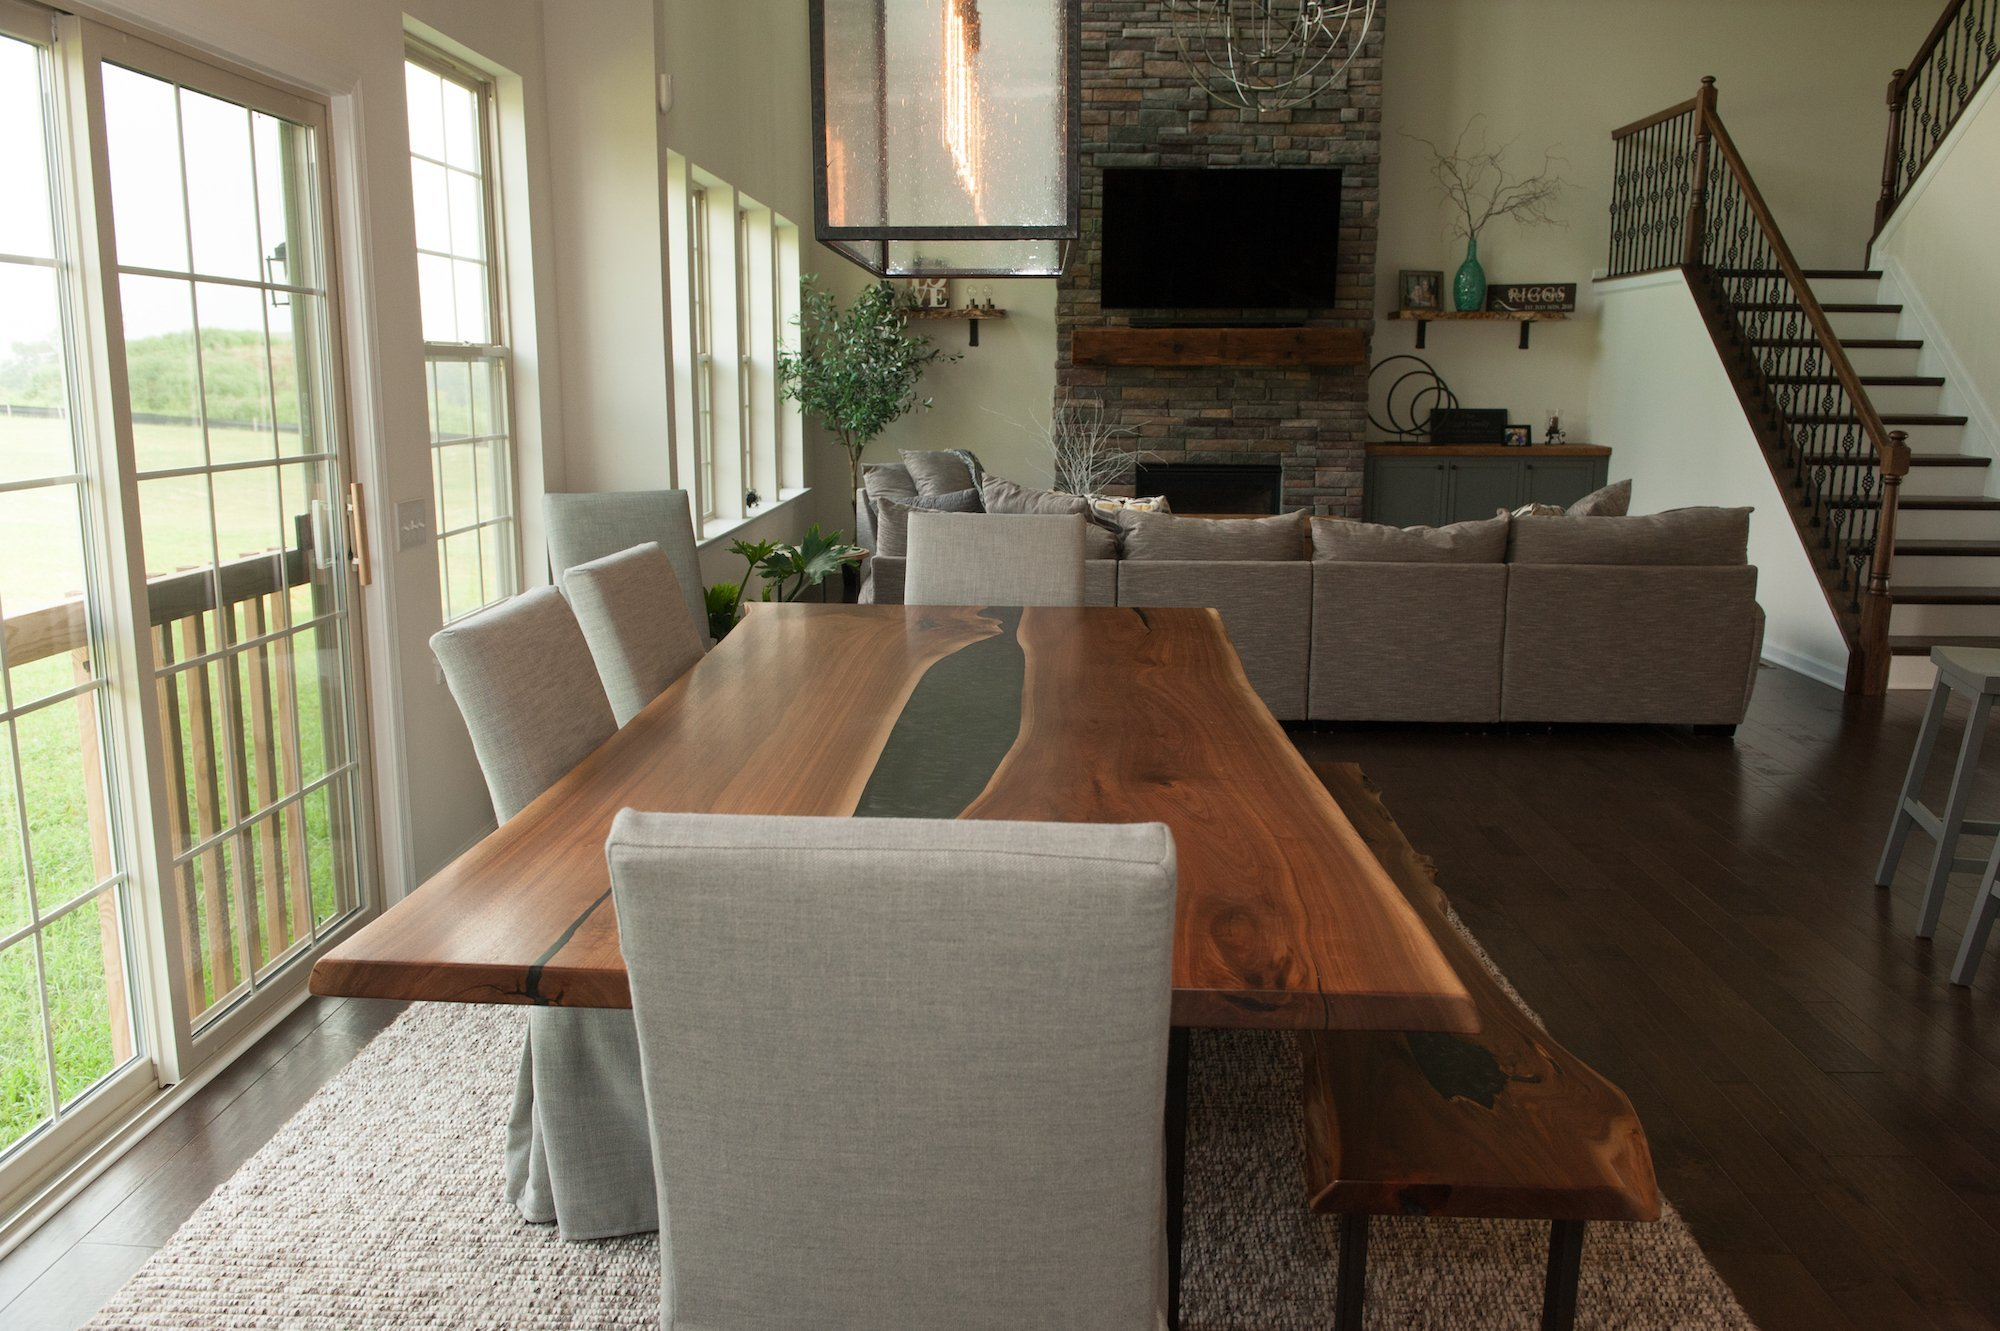 Dining Table Guide: Sizing Your Dream Table